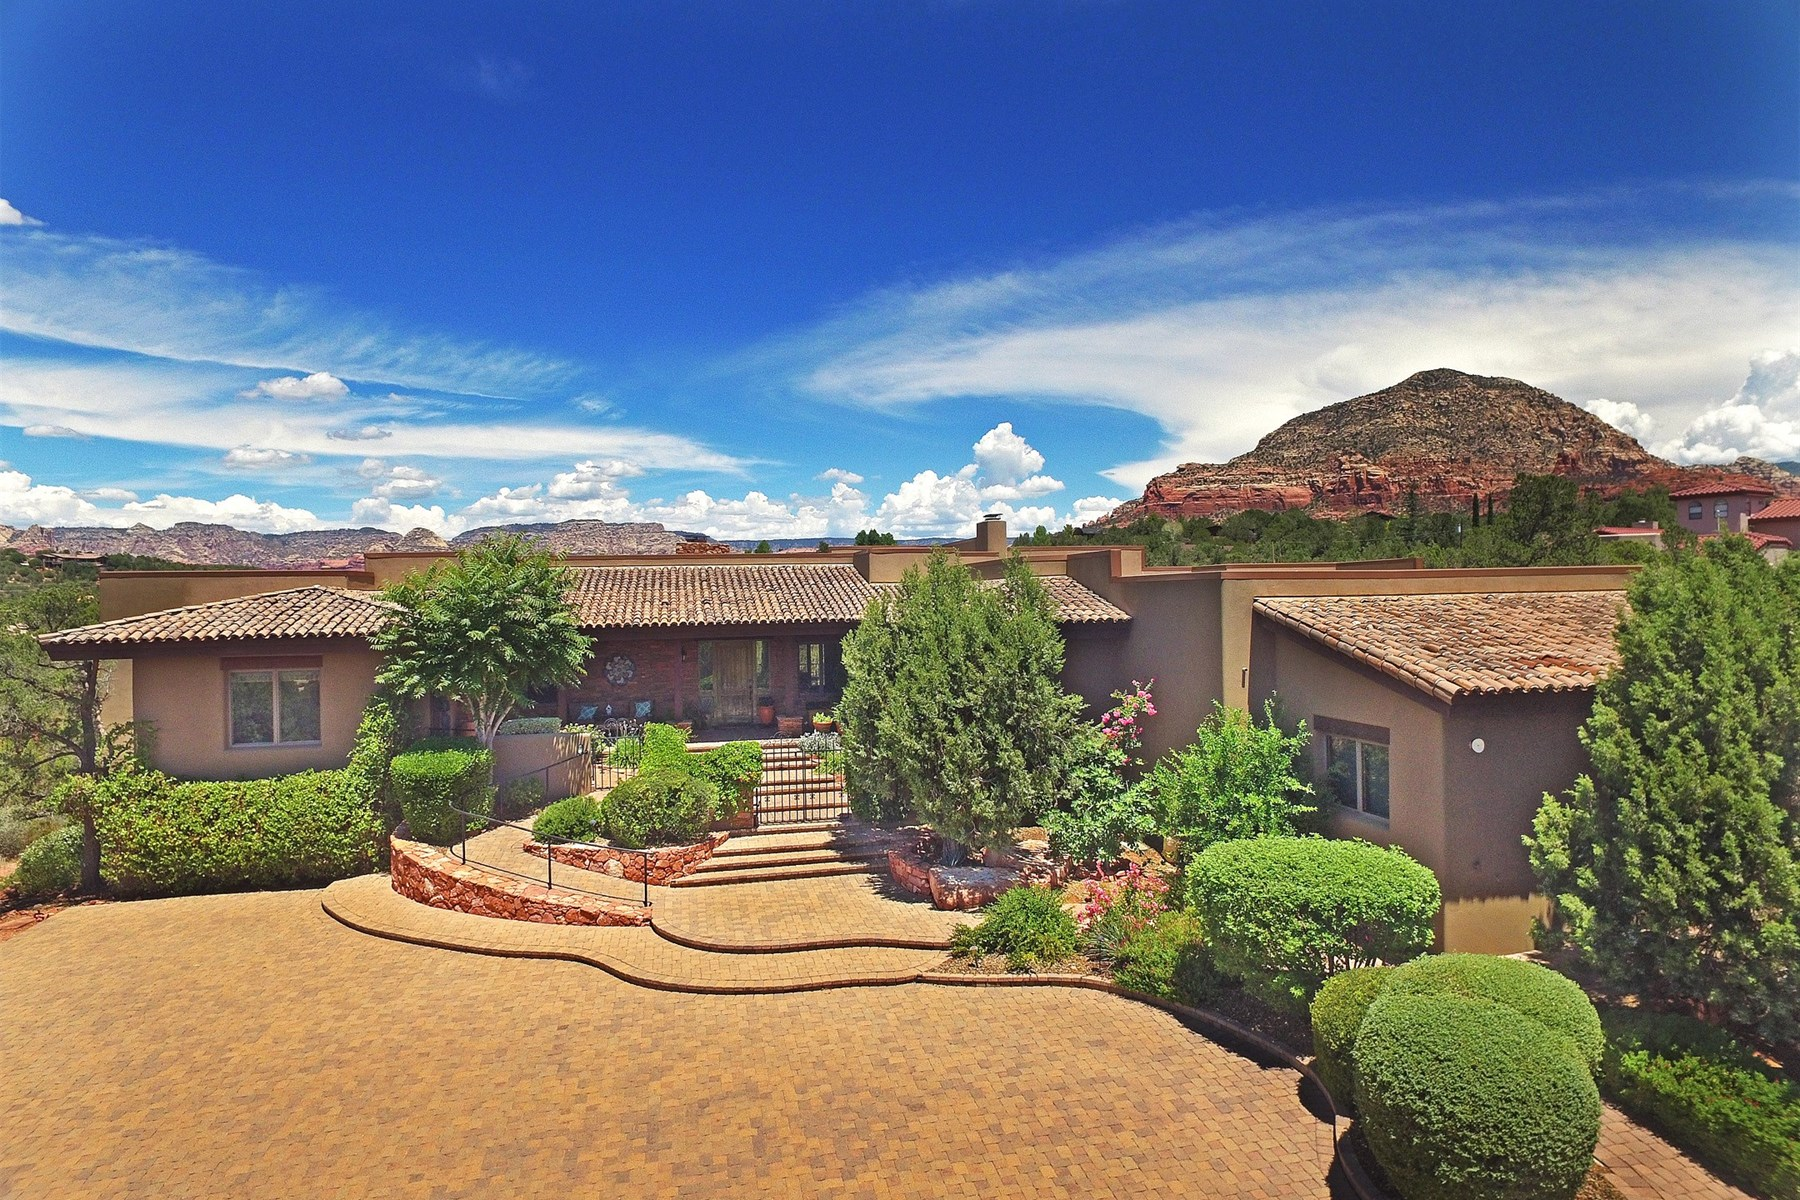 Casa Unifamiliar por un Venta en Gorgeous custom-designed luxury home 41 E Dove Wing Drive Sedona, Arizona, 86336 Estados Unidos